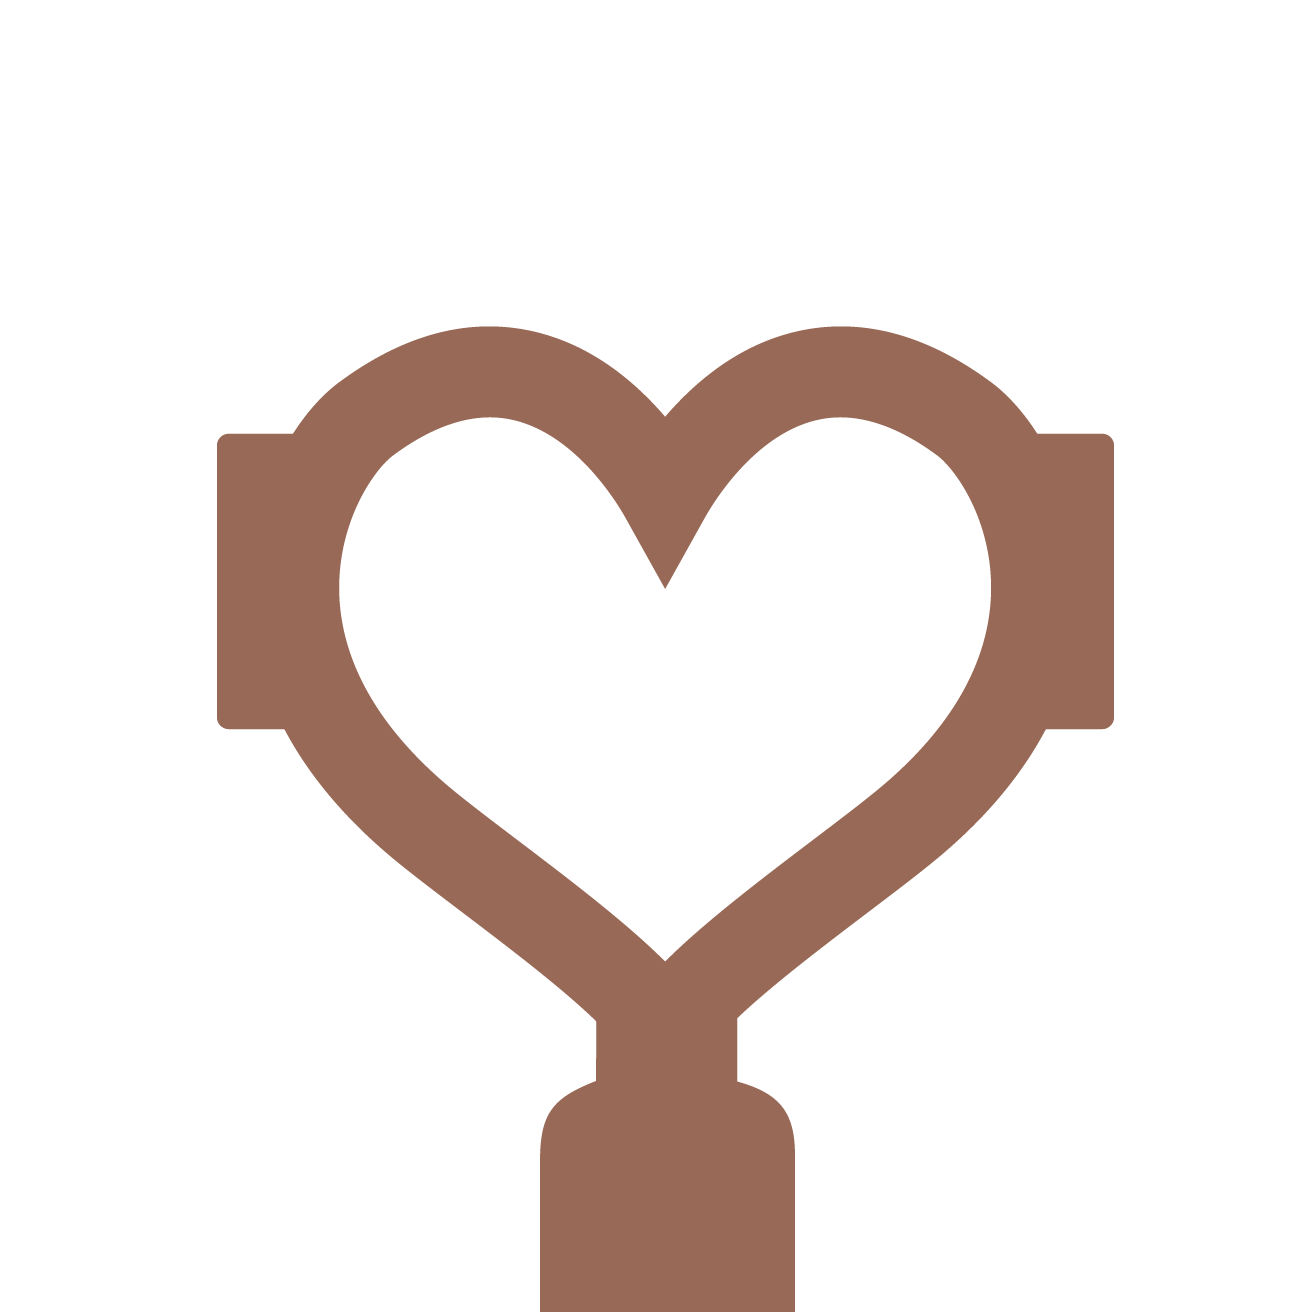 Hario 2 Cup Bleached Filters x 40 Sheets